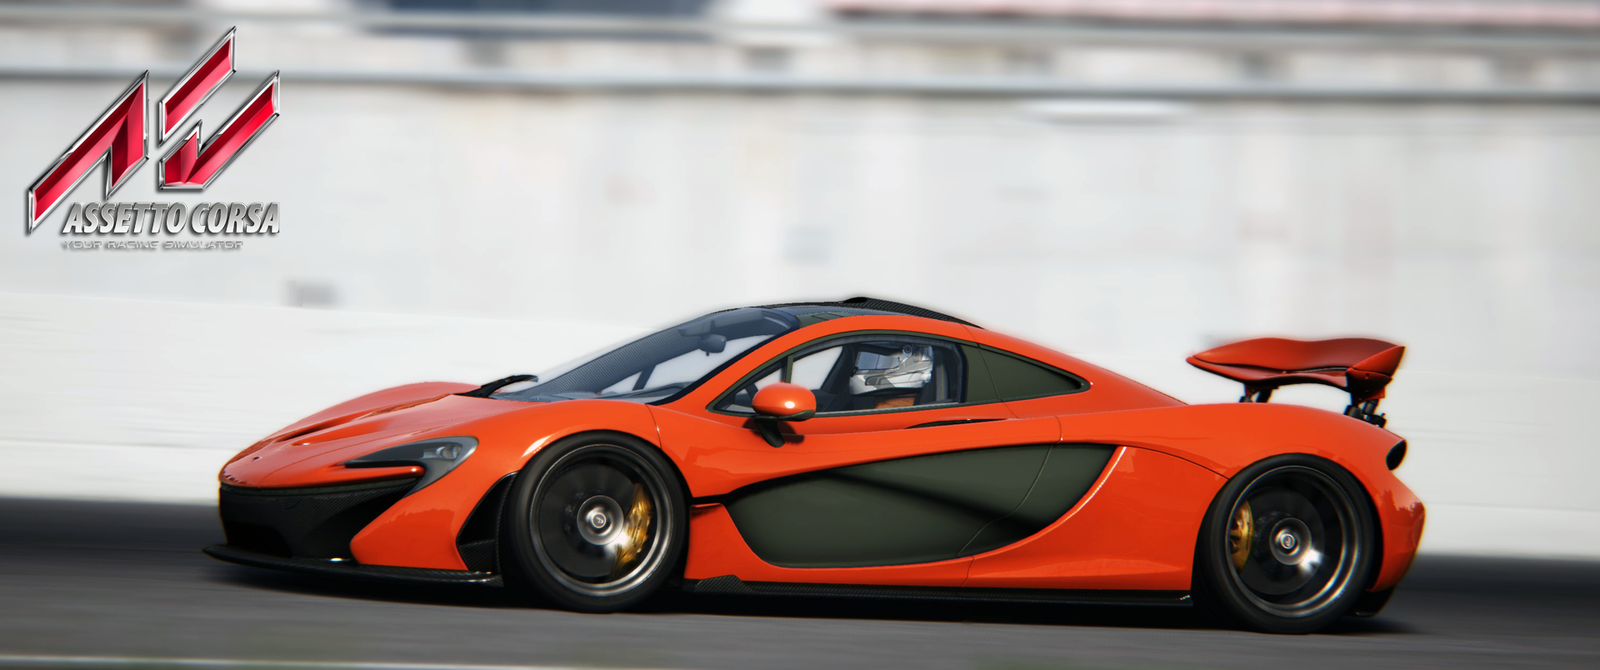 Assetto Corsa : images...